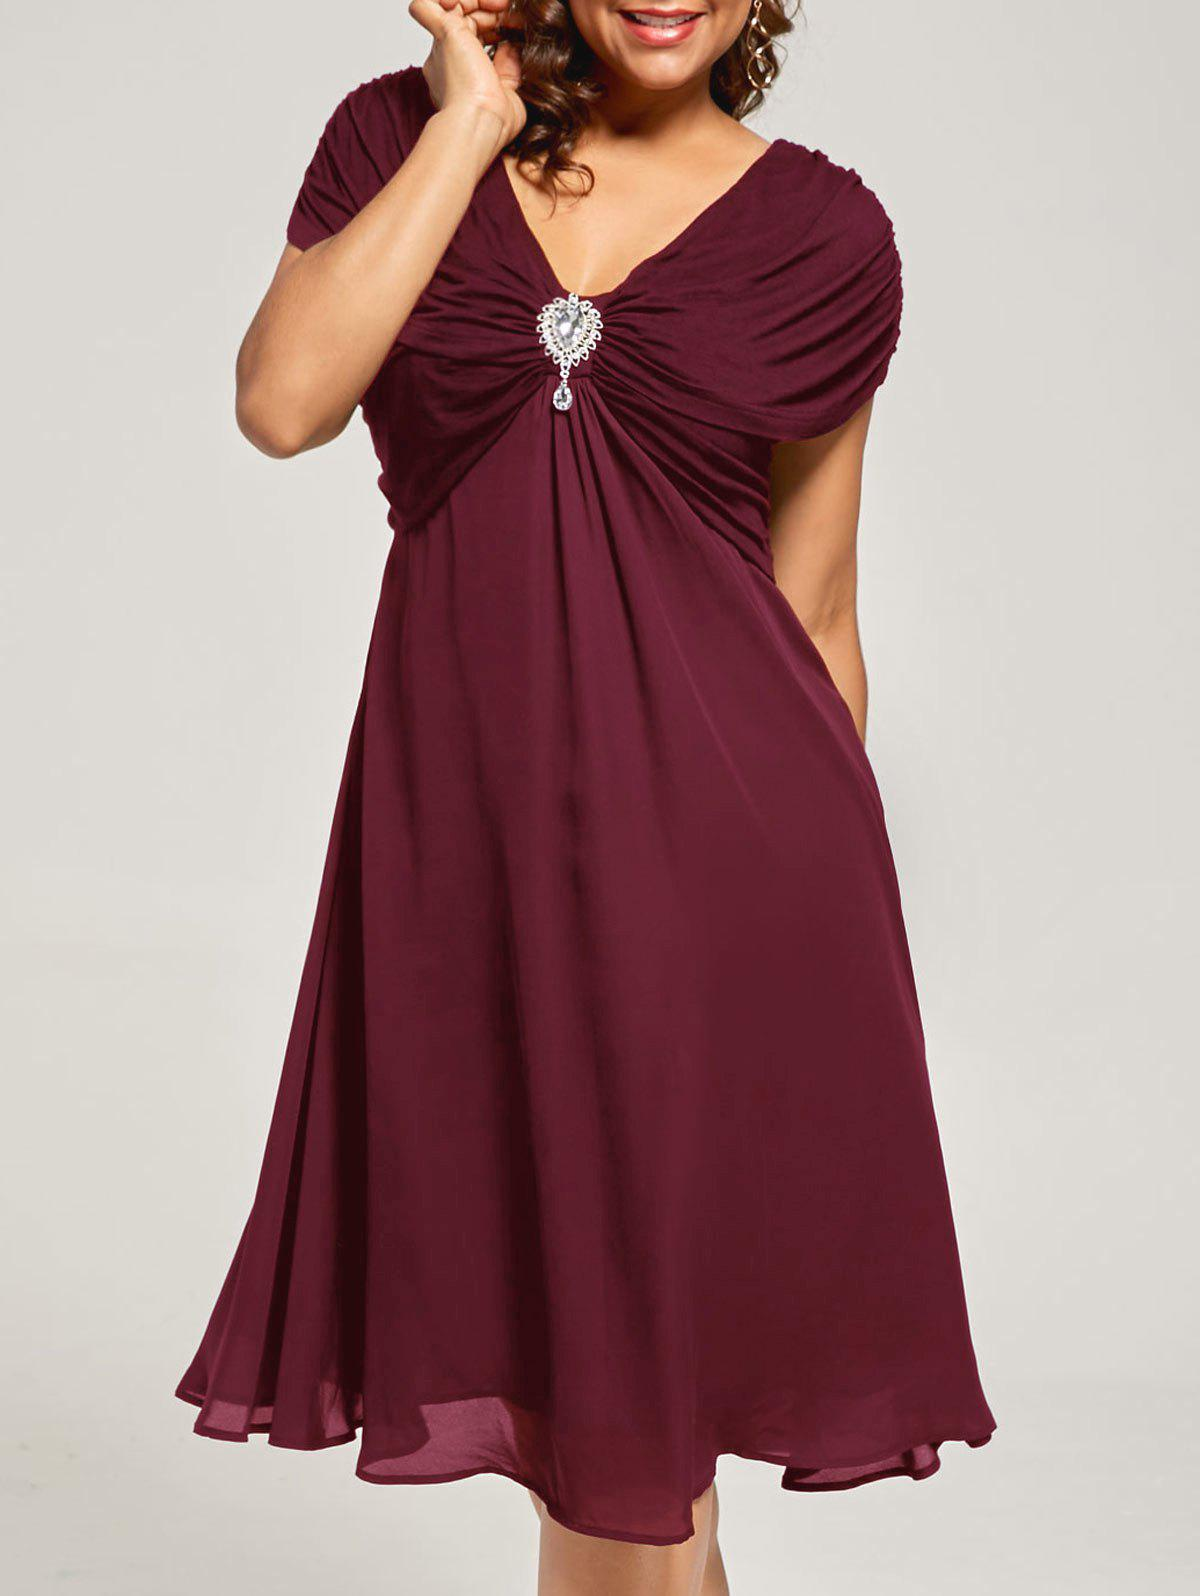 Plus Size Cap Sleeve Chiffon Ruched DressWOMEN<br><br>Size: XL; Color: WINE RED; Style: Brief; Material: Rayon,Spandex; Silhouette: A-Line; Dresses Length: Knee-Length; Neckline: V-Neck; Sleeve Length: Short Sleeves; Pattern Type: Solid Color; With Belt: No; Season: Summer; Weight: 0.4500kg; Package Contents: 1 x Dress;